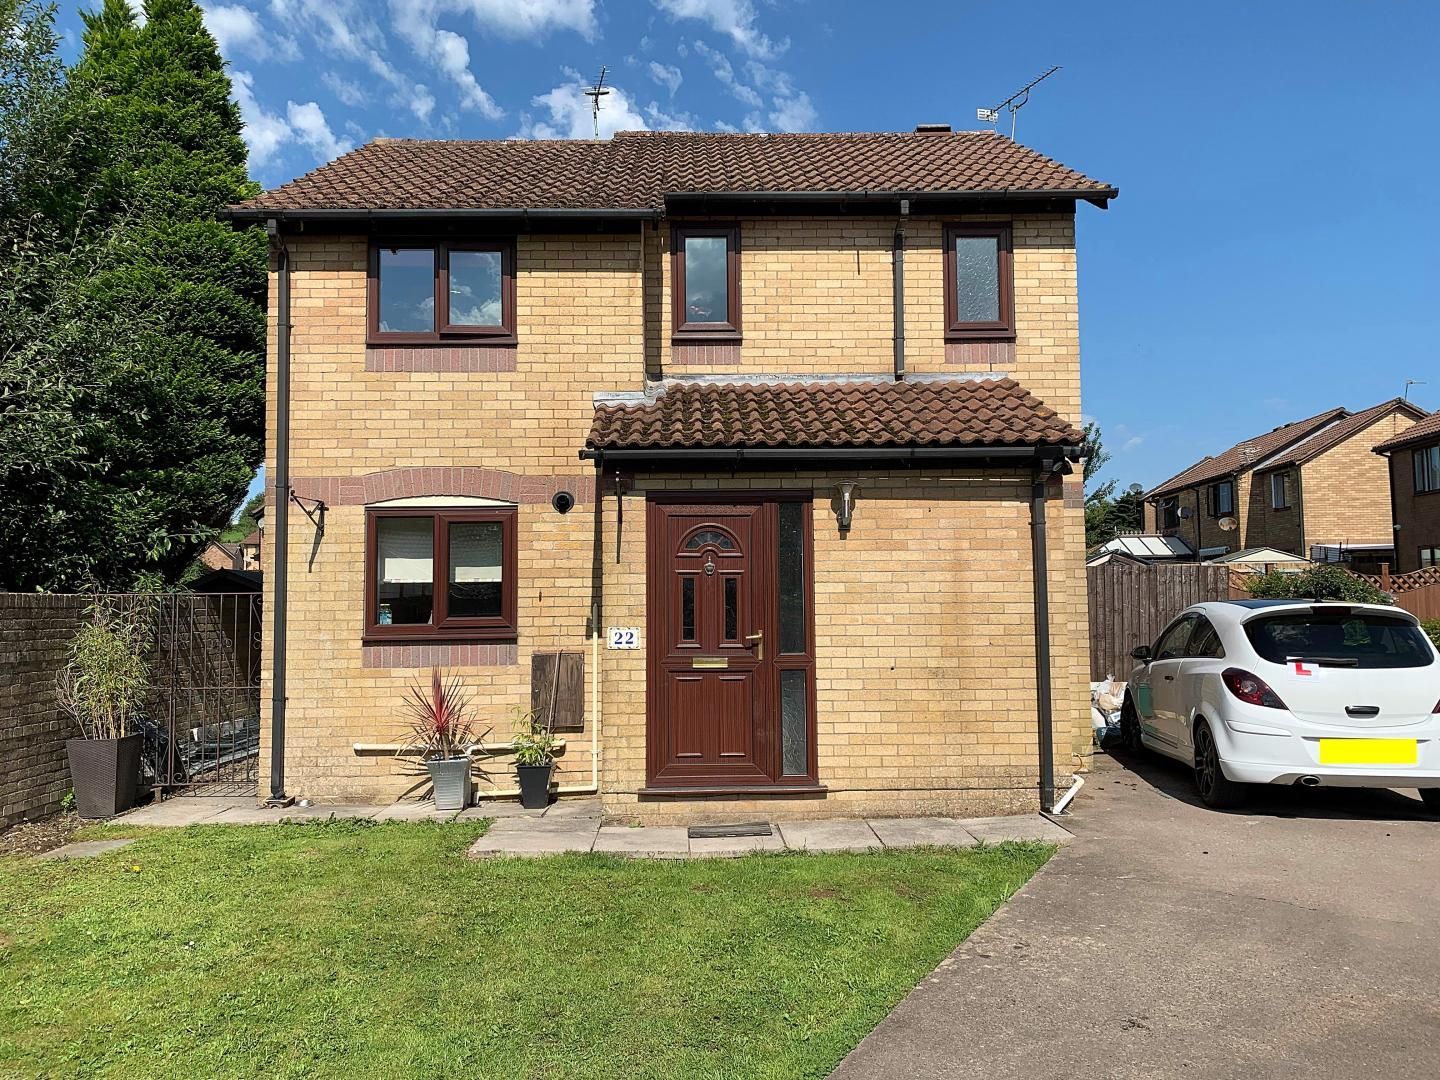 3 bed house for sale in Chandlers Reach, CF38